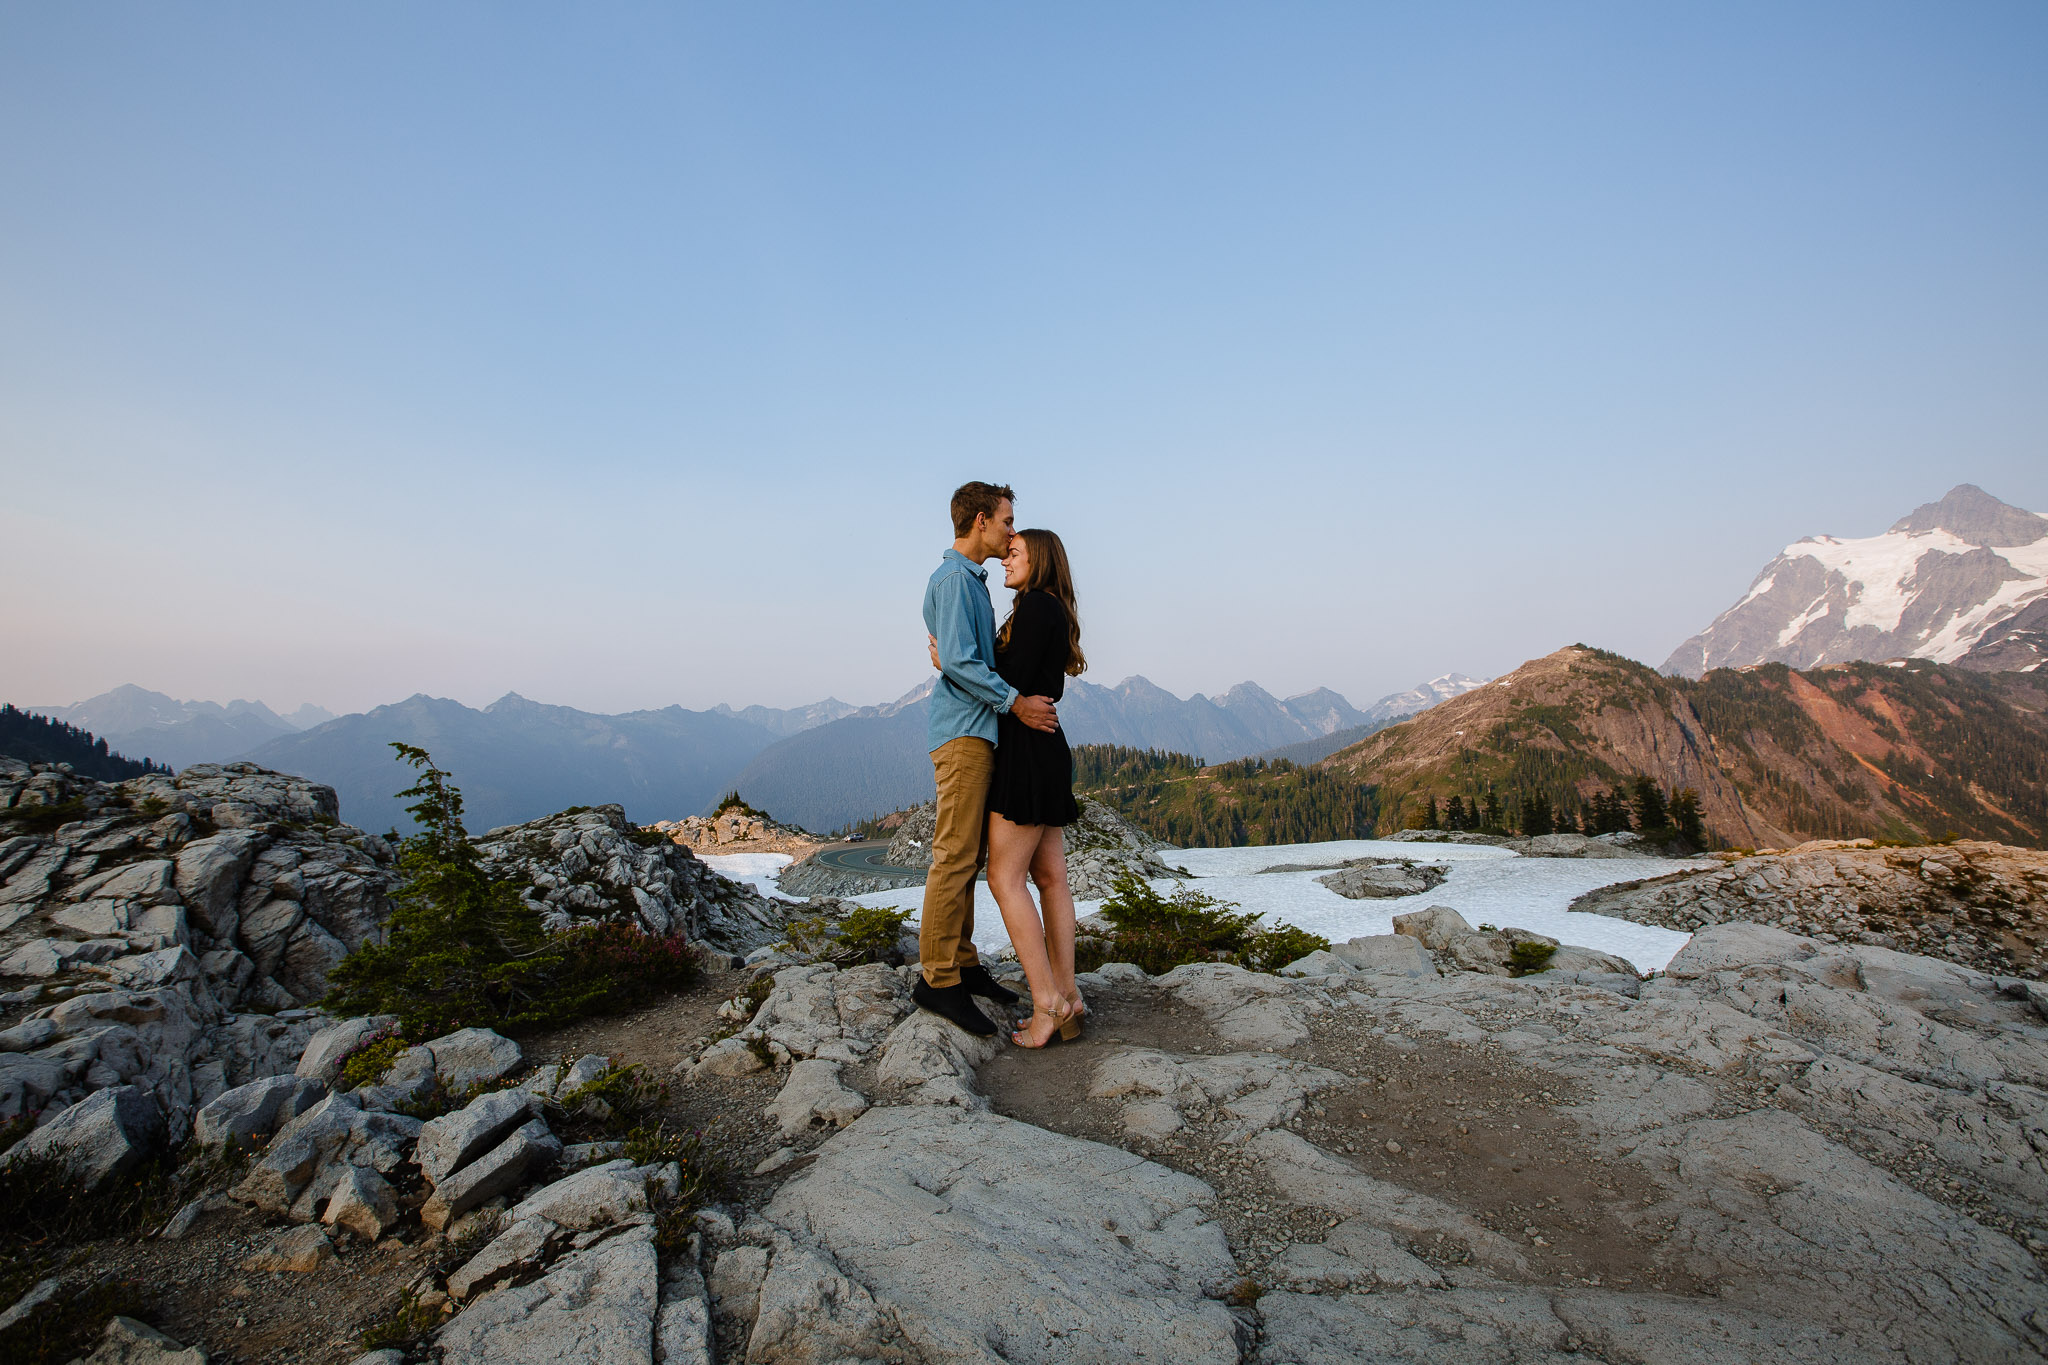 Artist Point Mount Baker Scenery Engagement Photography Inspo Couple Romantic Young Black Jean Sunset-023.jpg